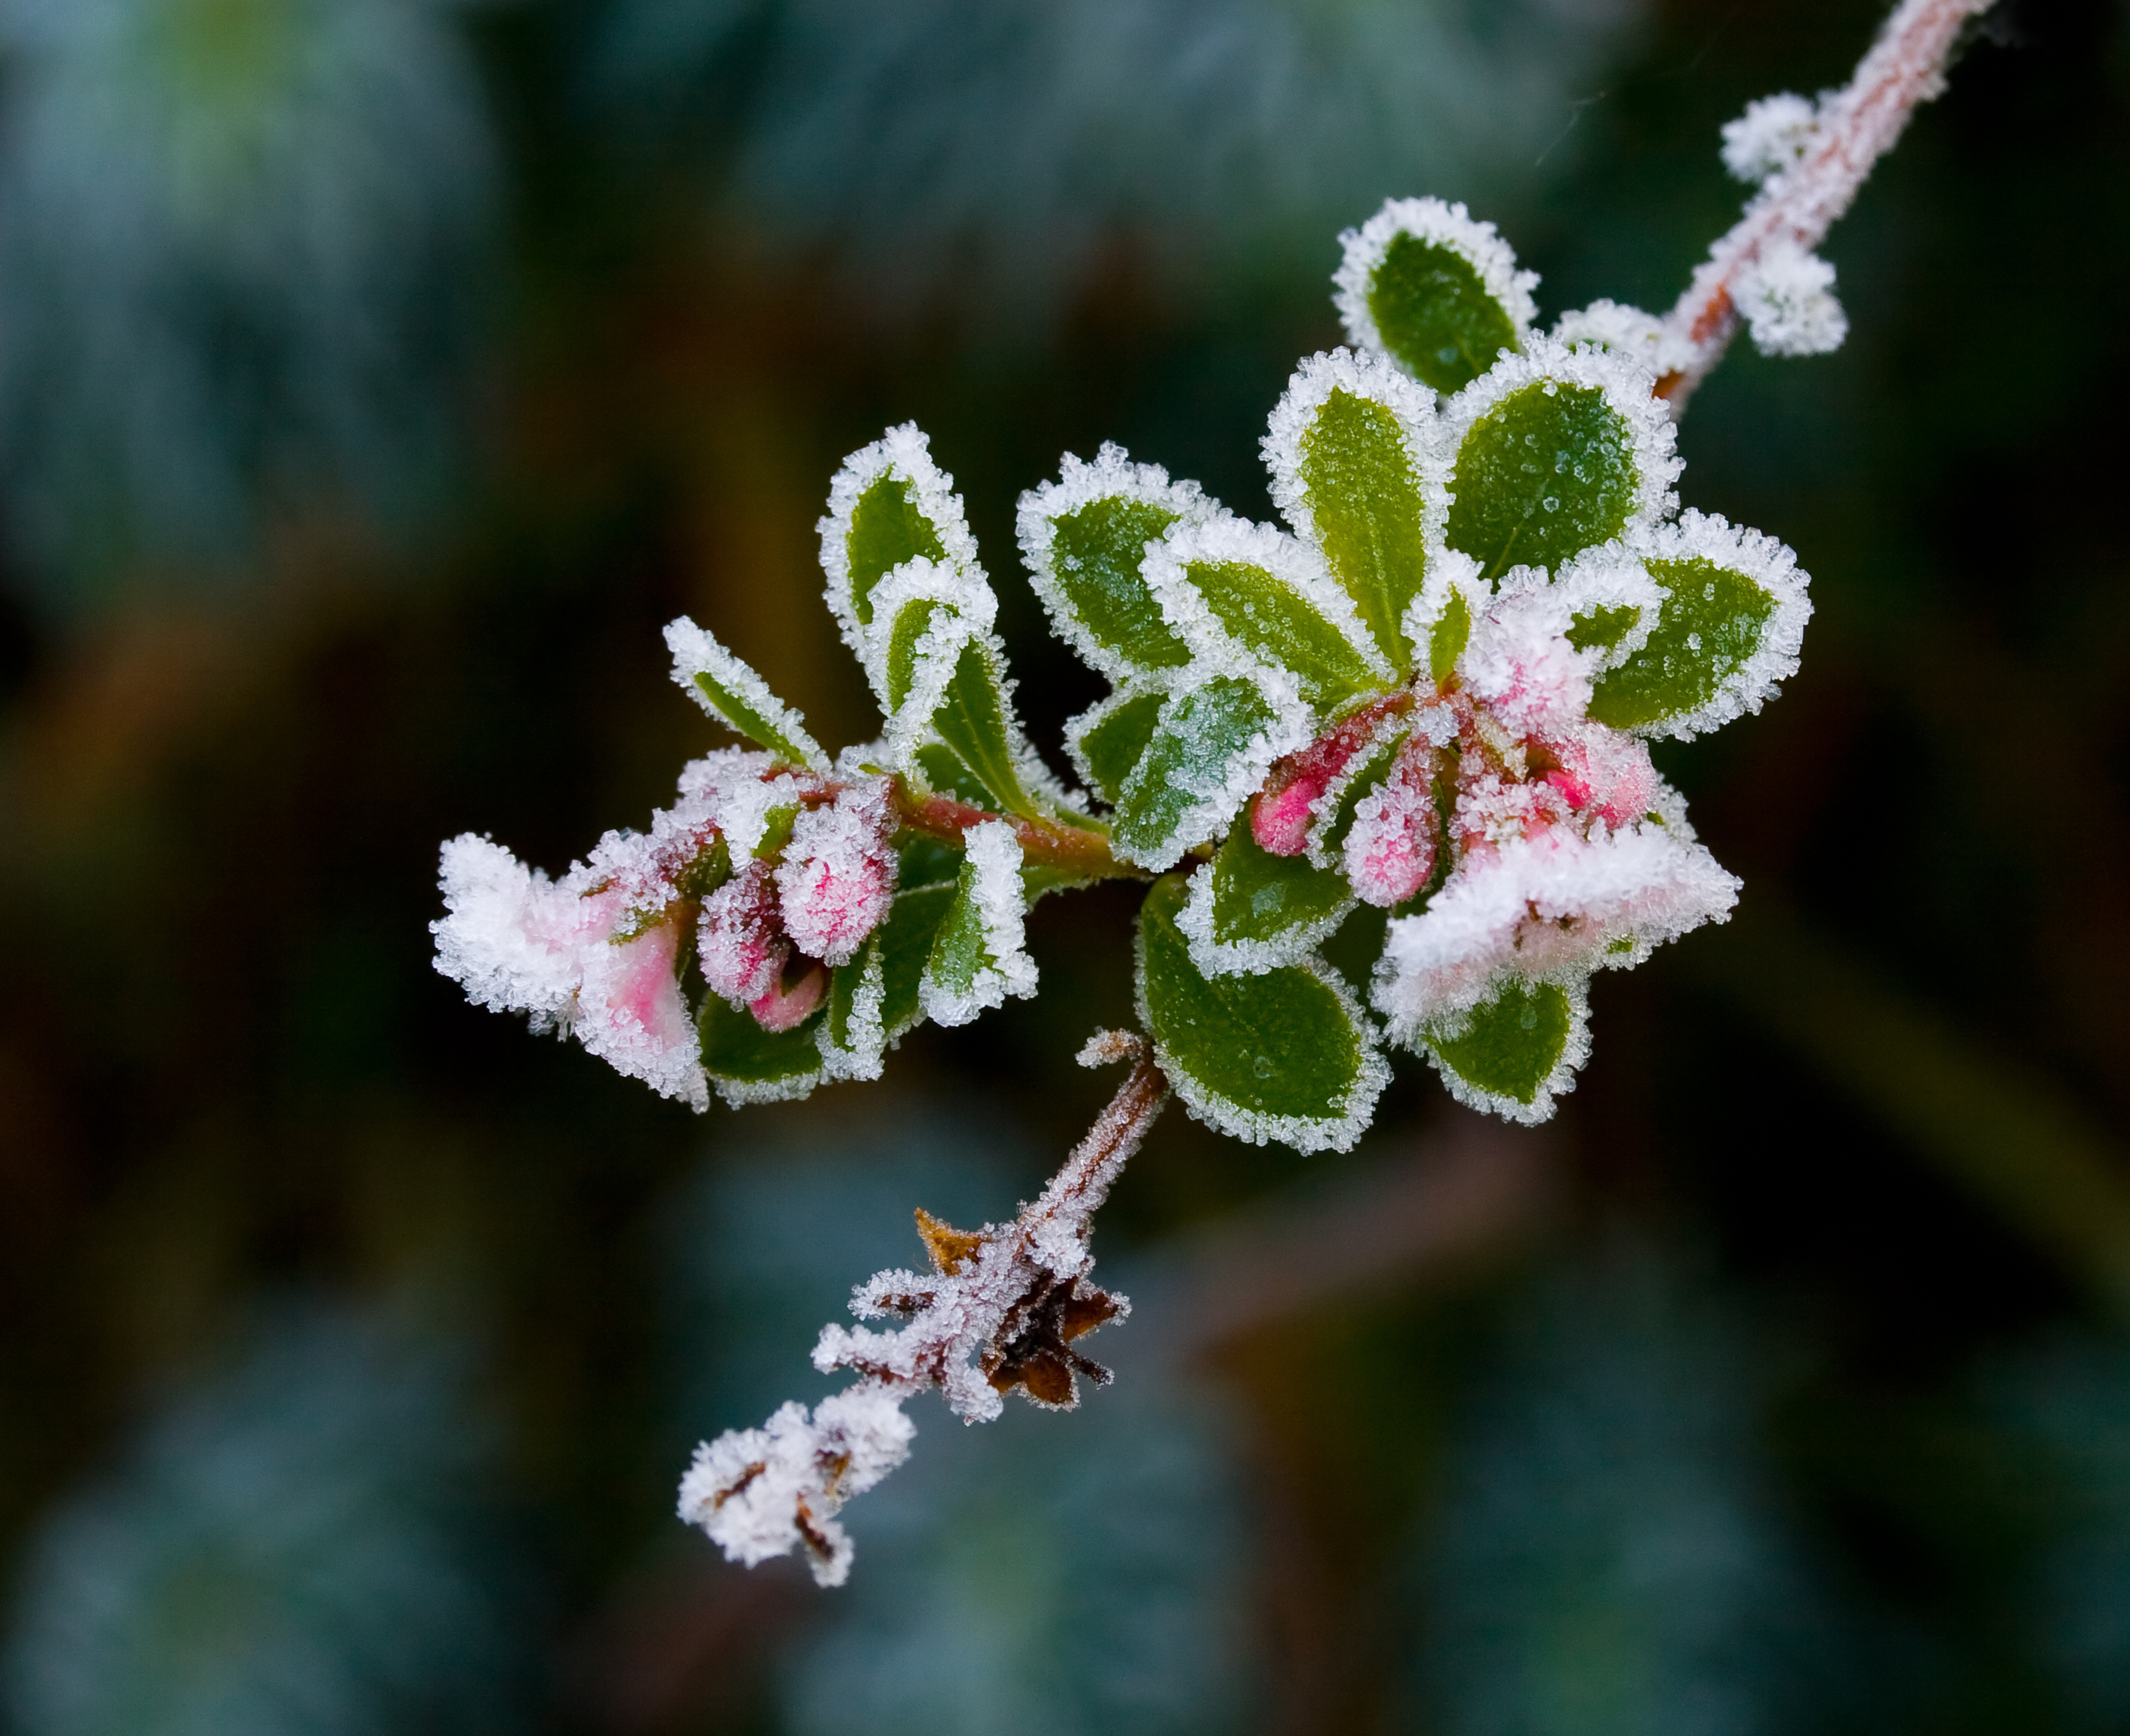 Essential Gardening Jobs for December the handy mano thehandymano mano mano manomano diy do it yourself garden winter cold flower in frost